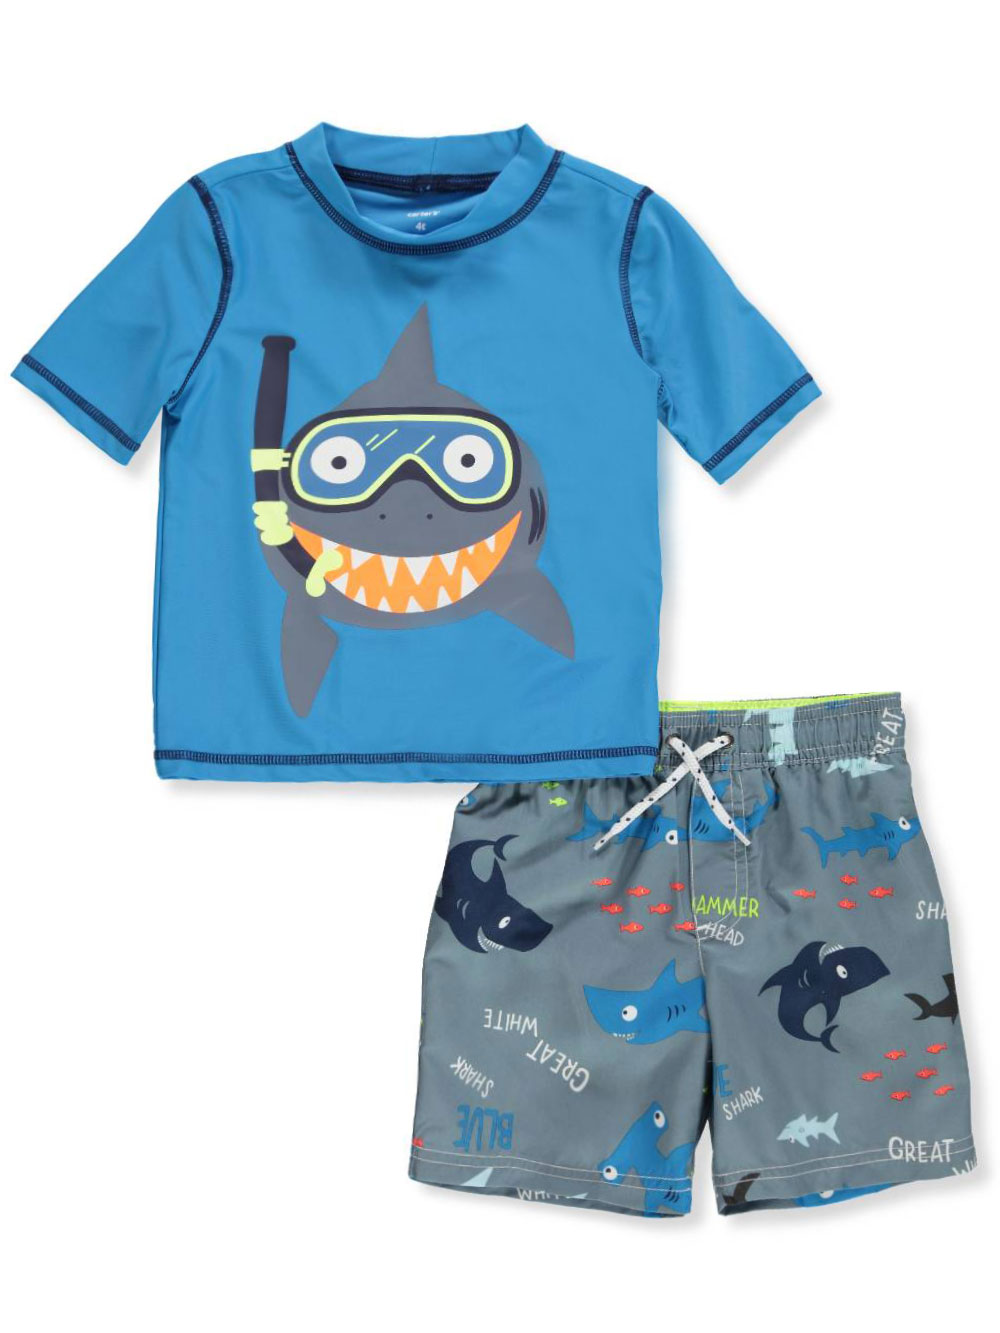 317b71ad6b Boys' 2-Piece Swim Set by Carter's in Blue/gray from Cookie's Kids